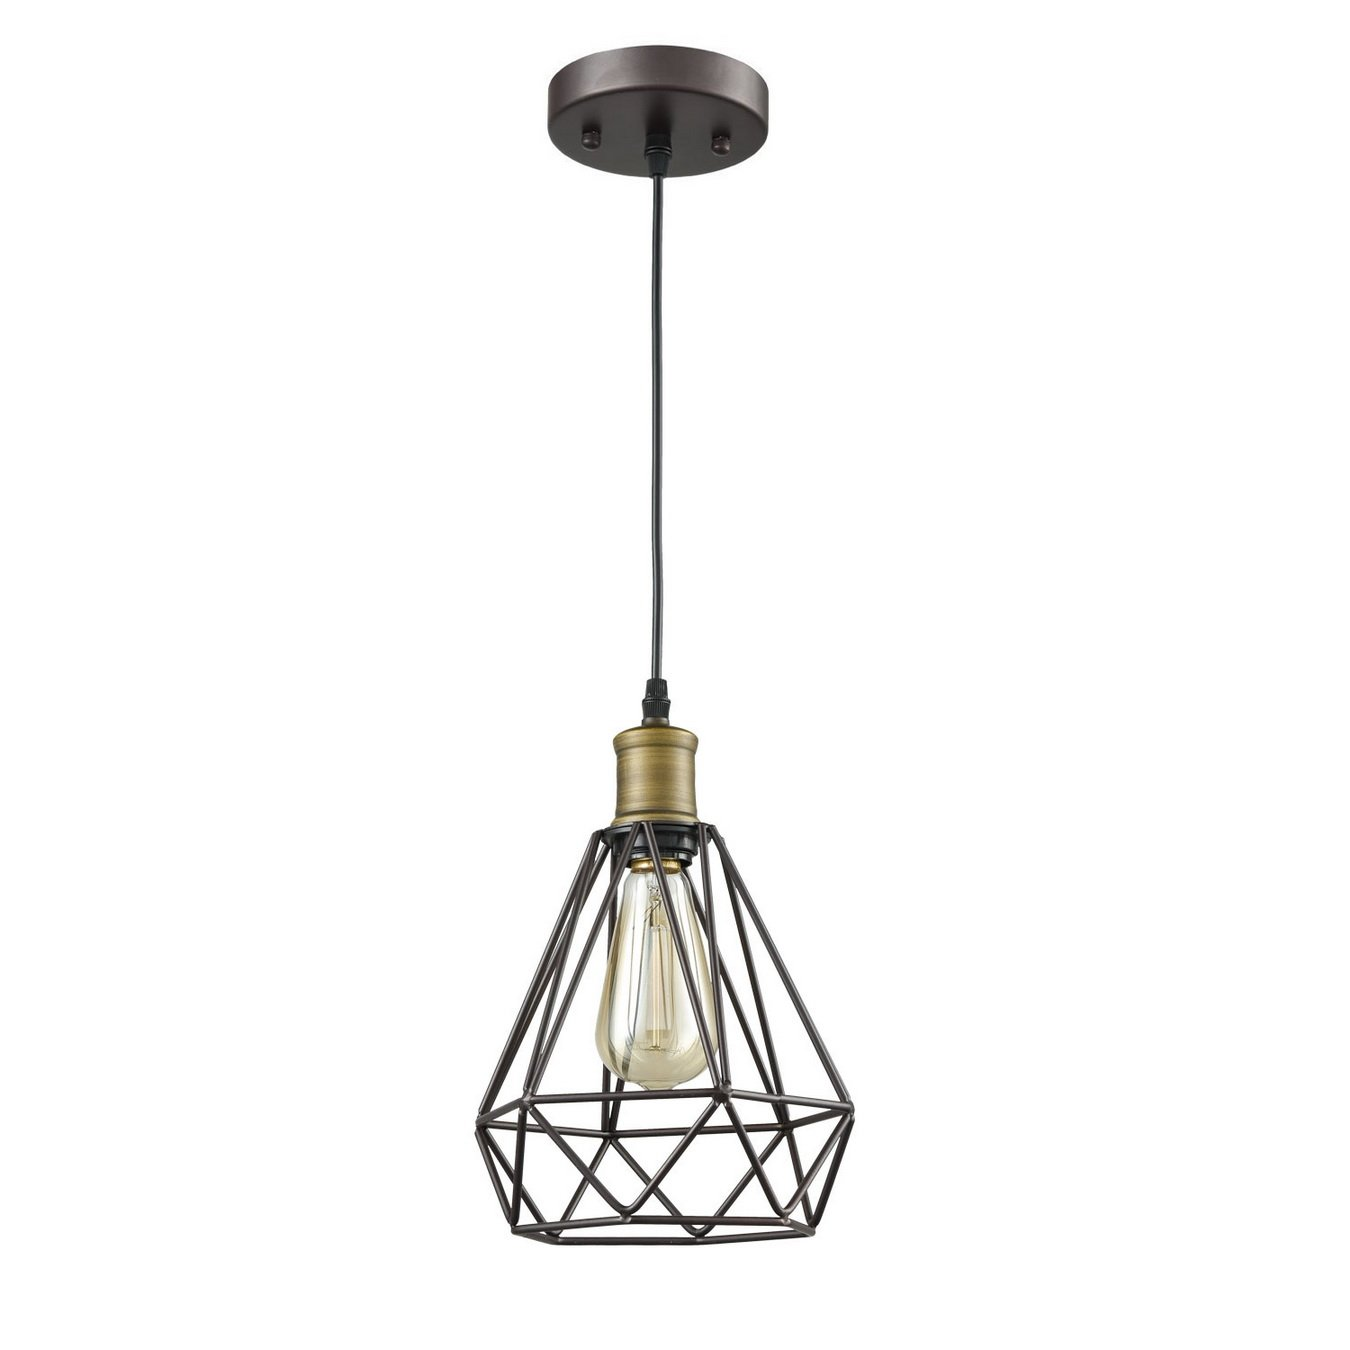 Yobo lighting vintage oil rubbed bronze polygon wire pendant light yobo lighting vintage oil rubbed bronze polygon wire pendant light art deco greentooth Gallery